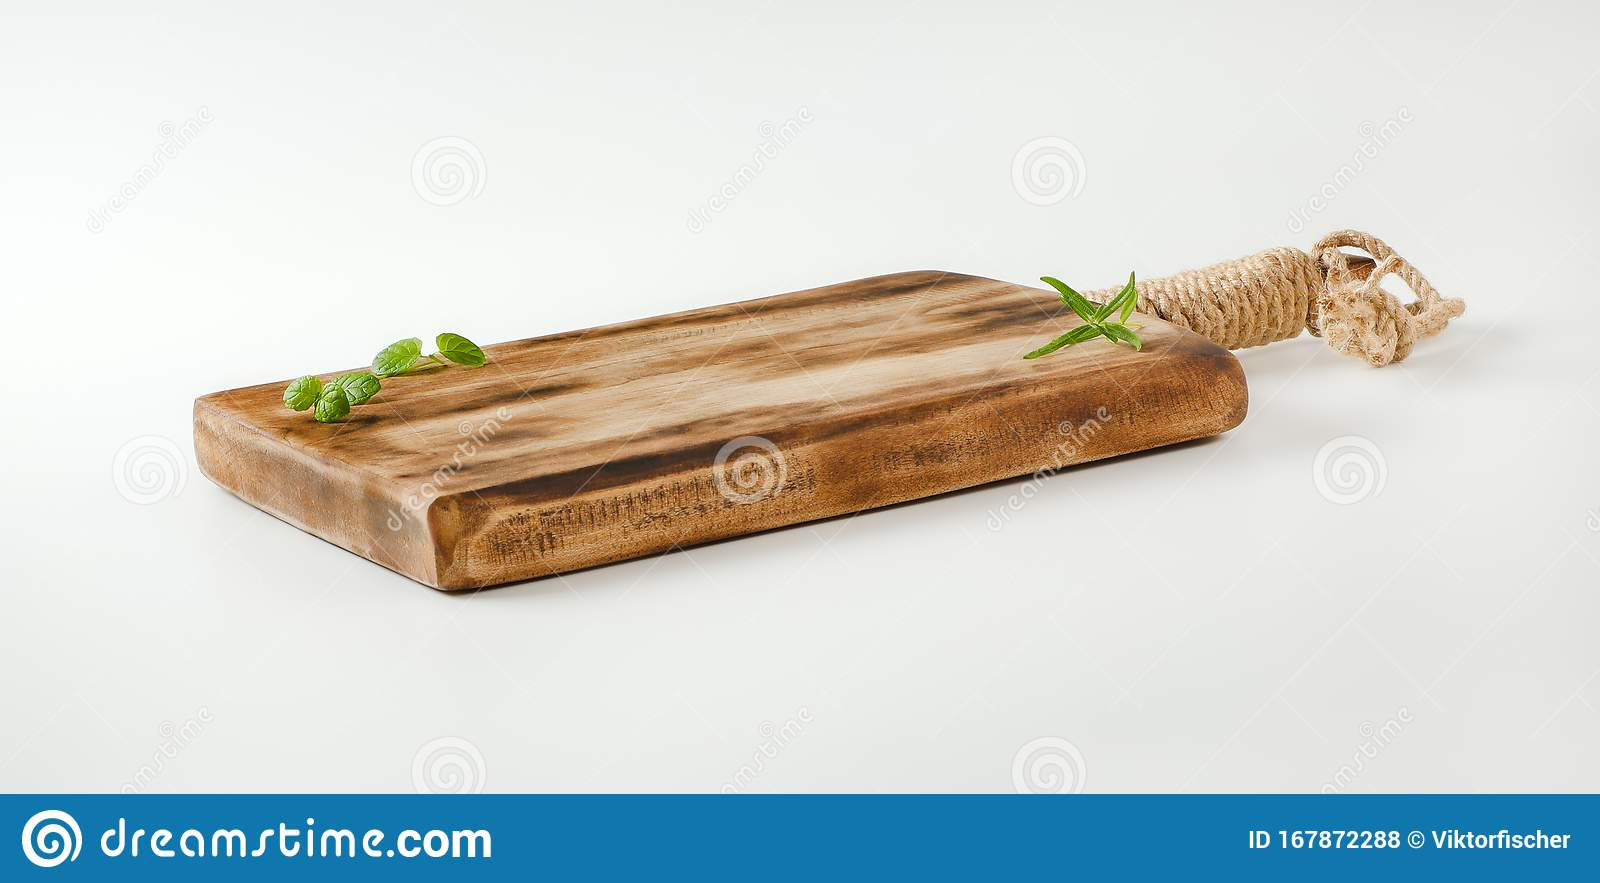 Rustic Wooden Cutting Board Or Serving Tray Stock Photo Image Of Tray Rectangle 167872288